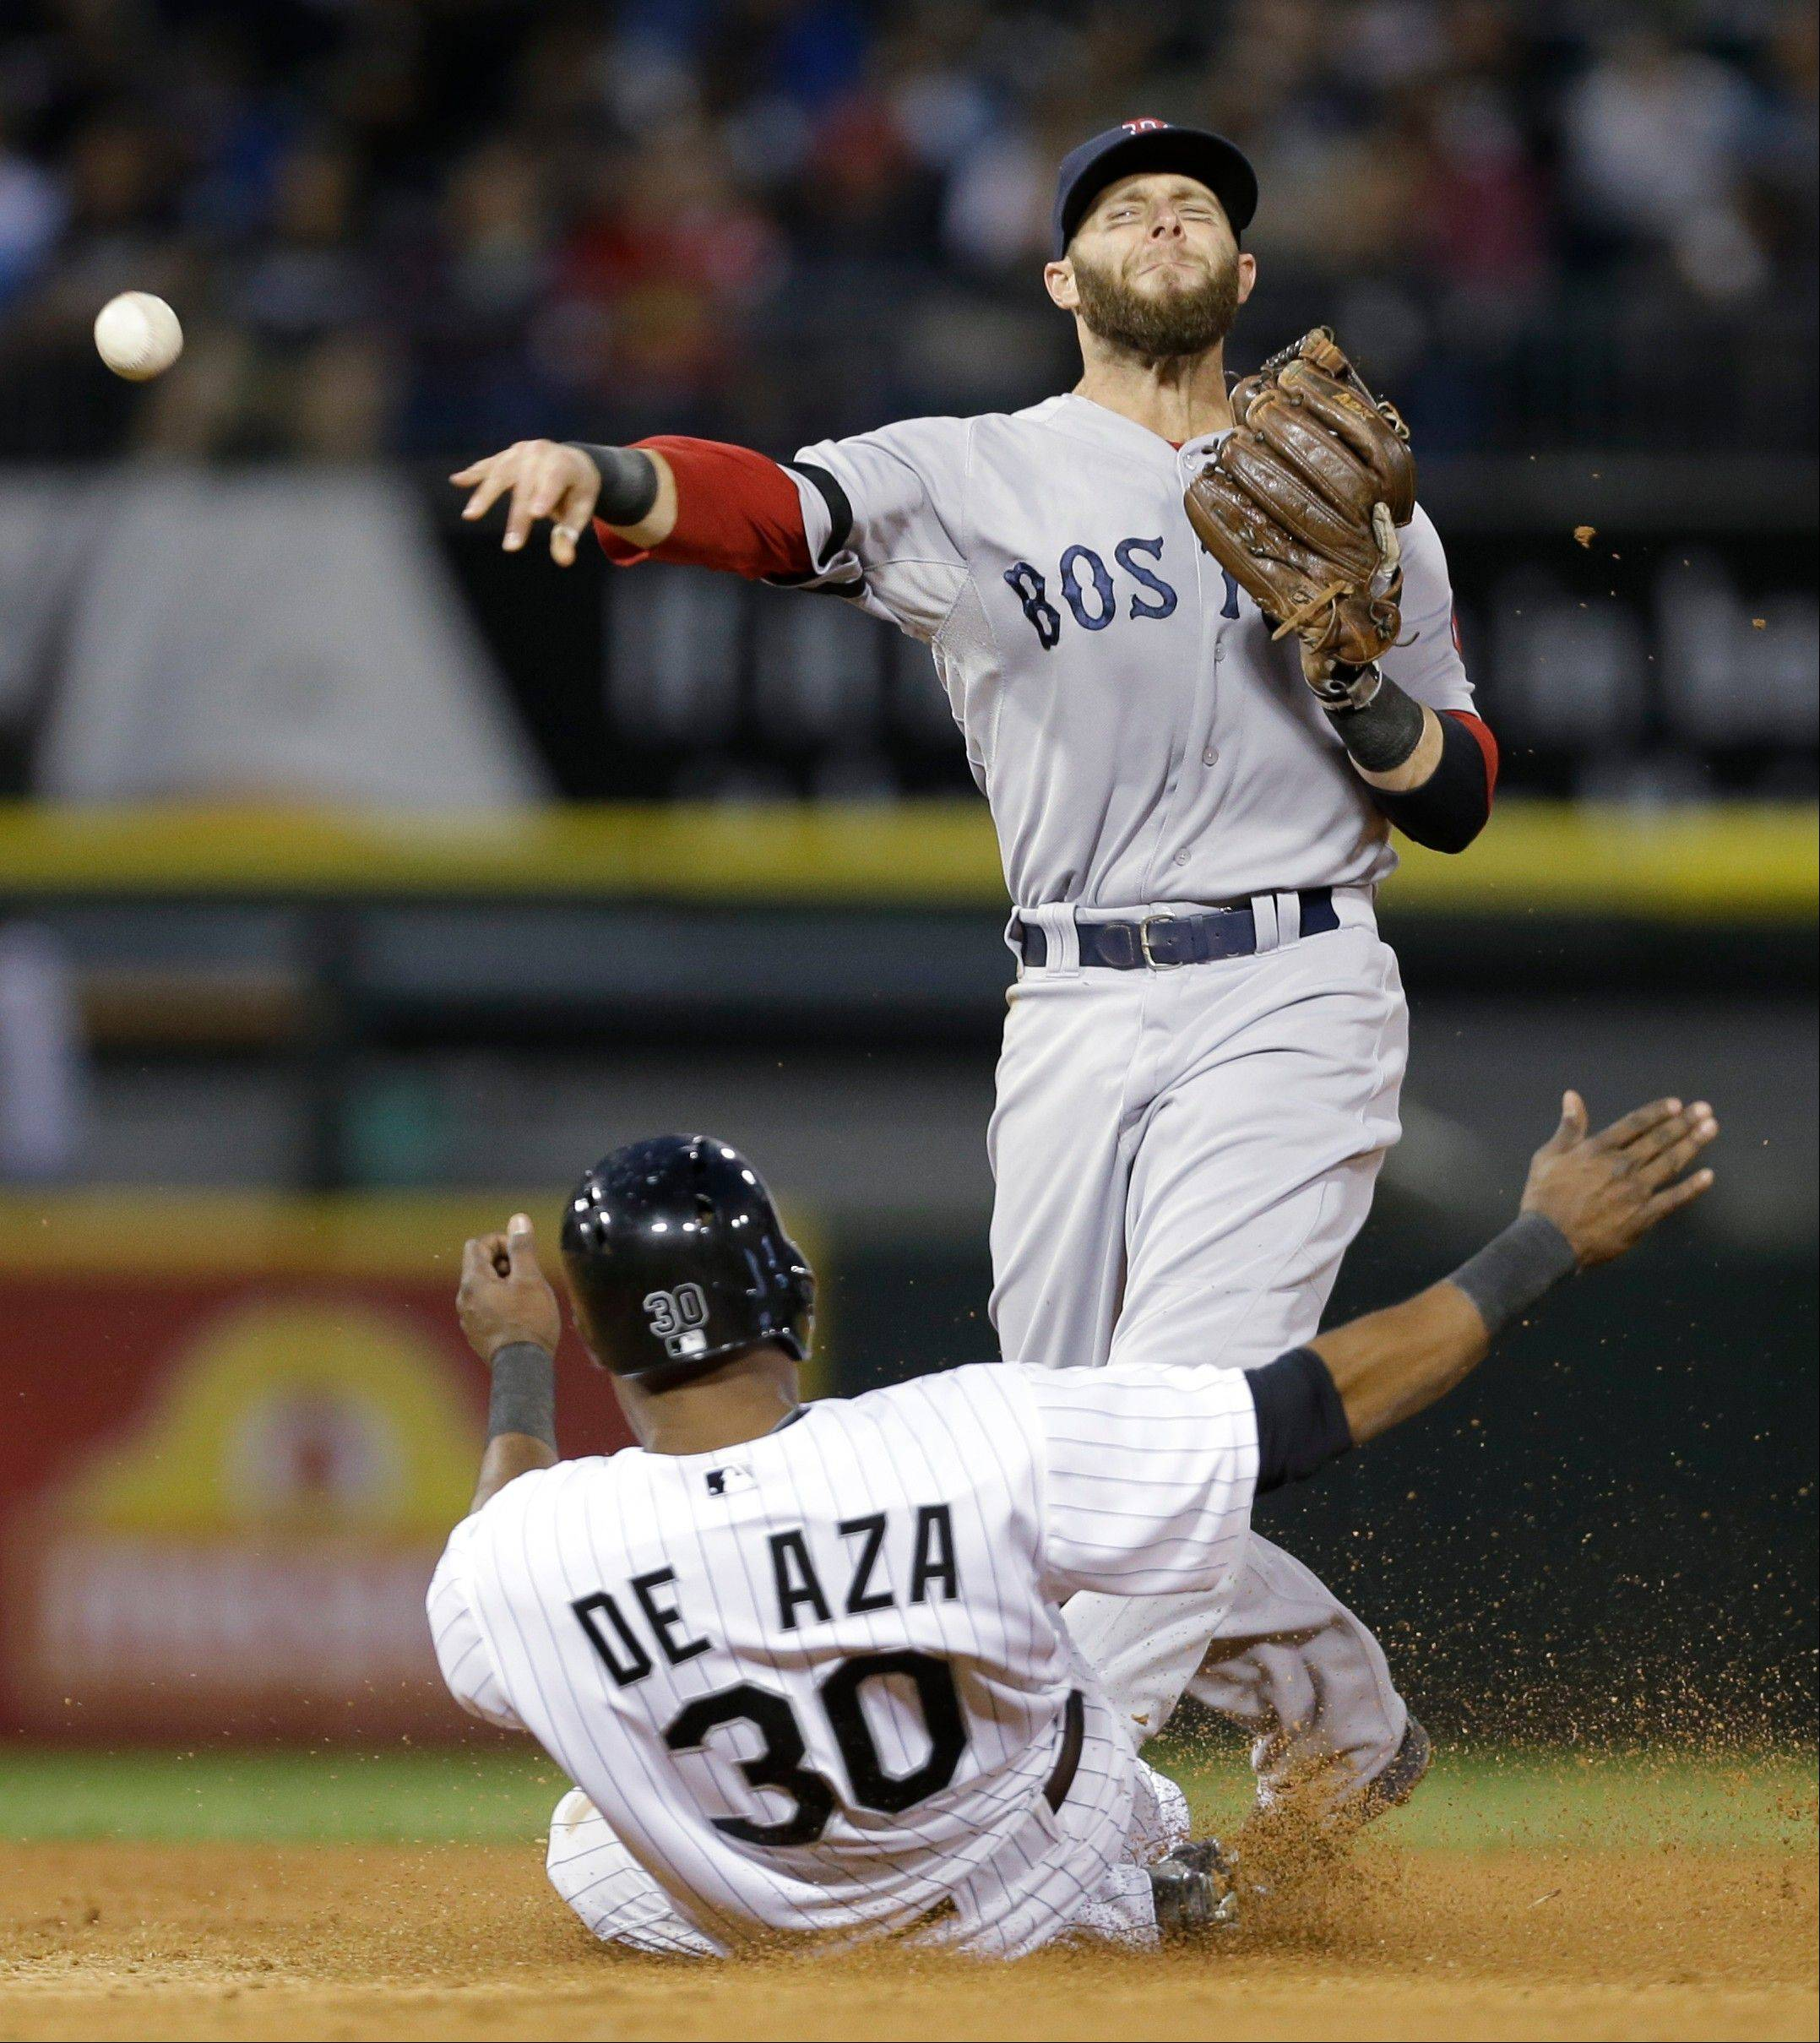 Boston Red Sox second baseman Dustin Pedroia, top, throws to first after forcing out Chicago White Sox's Alejandro De Aza during the third inning of a baseball game in Chicago, Wednesday, May 22, 2013. Alexei Ramirez was safe at first.